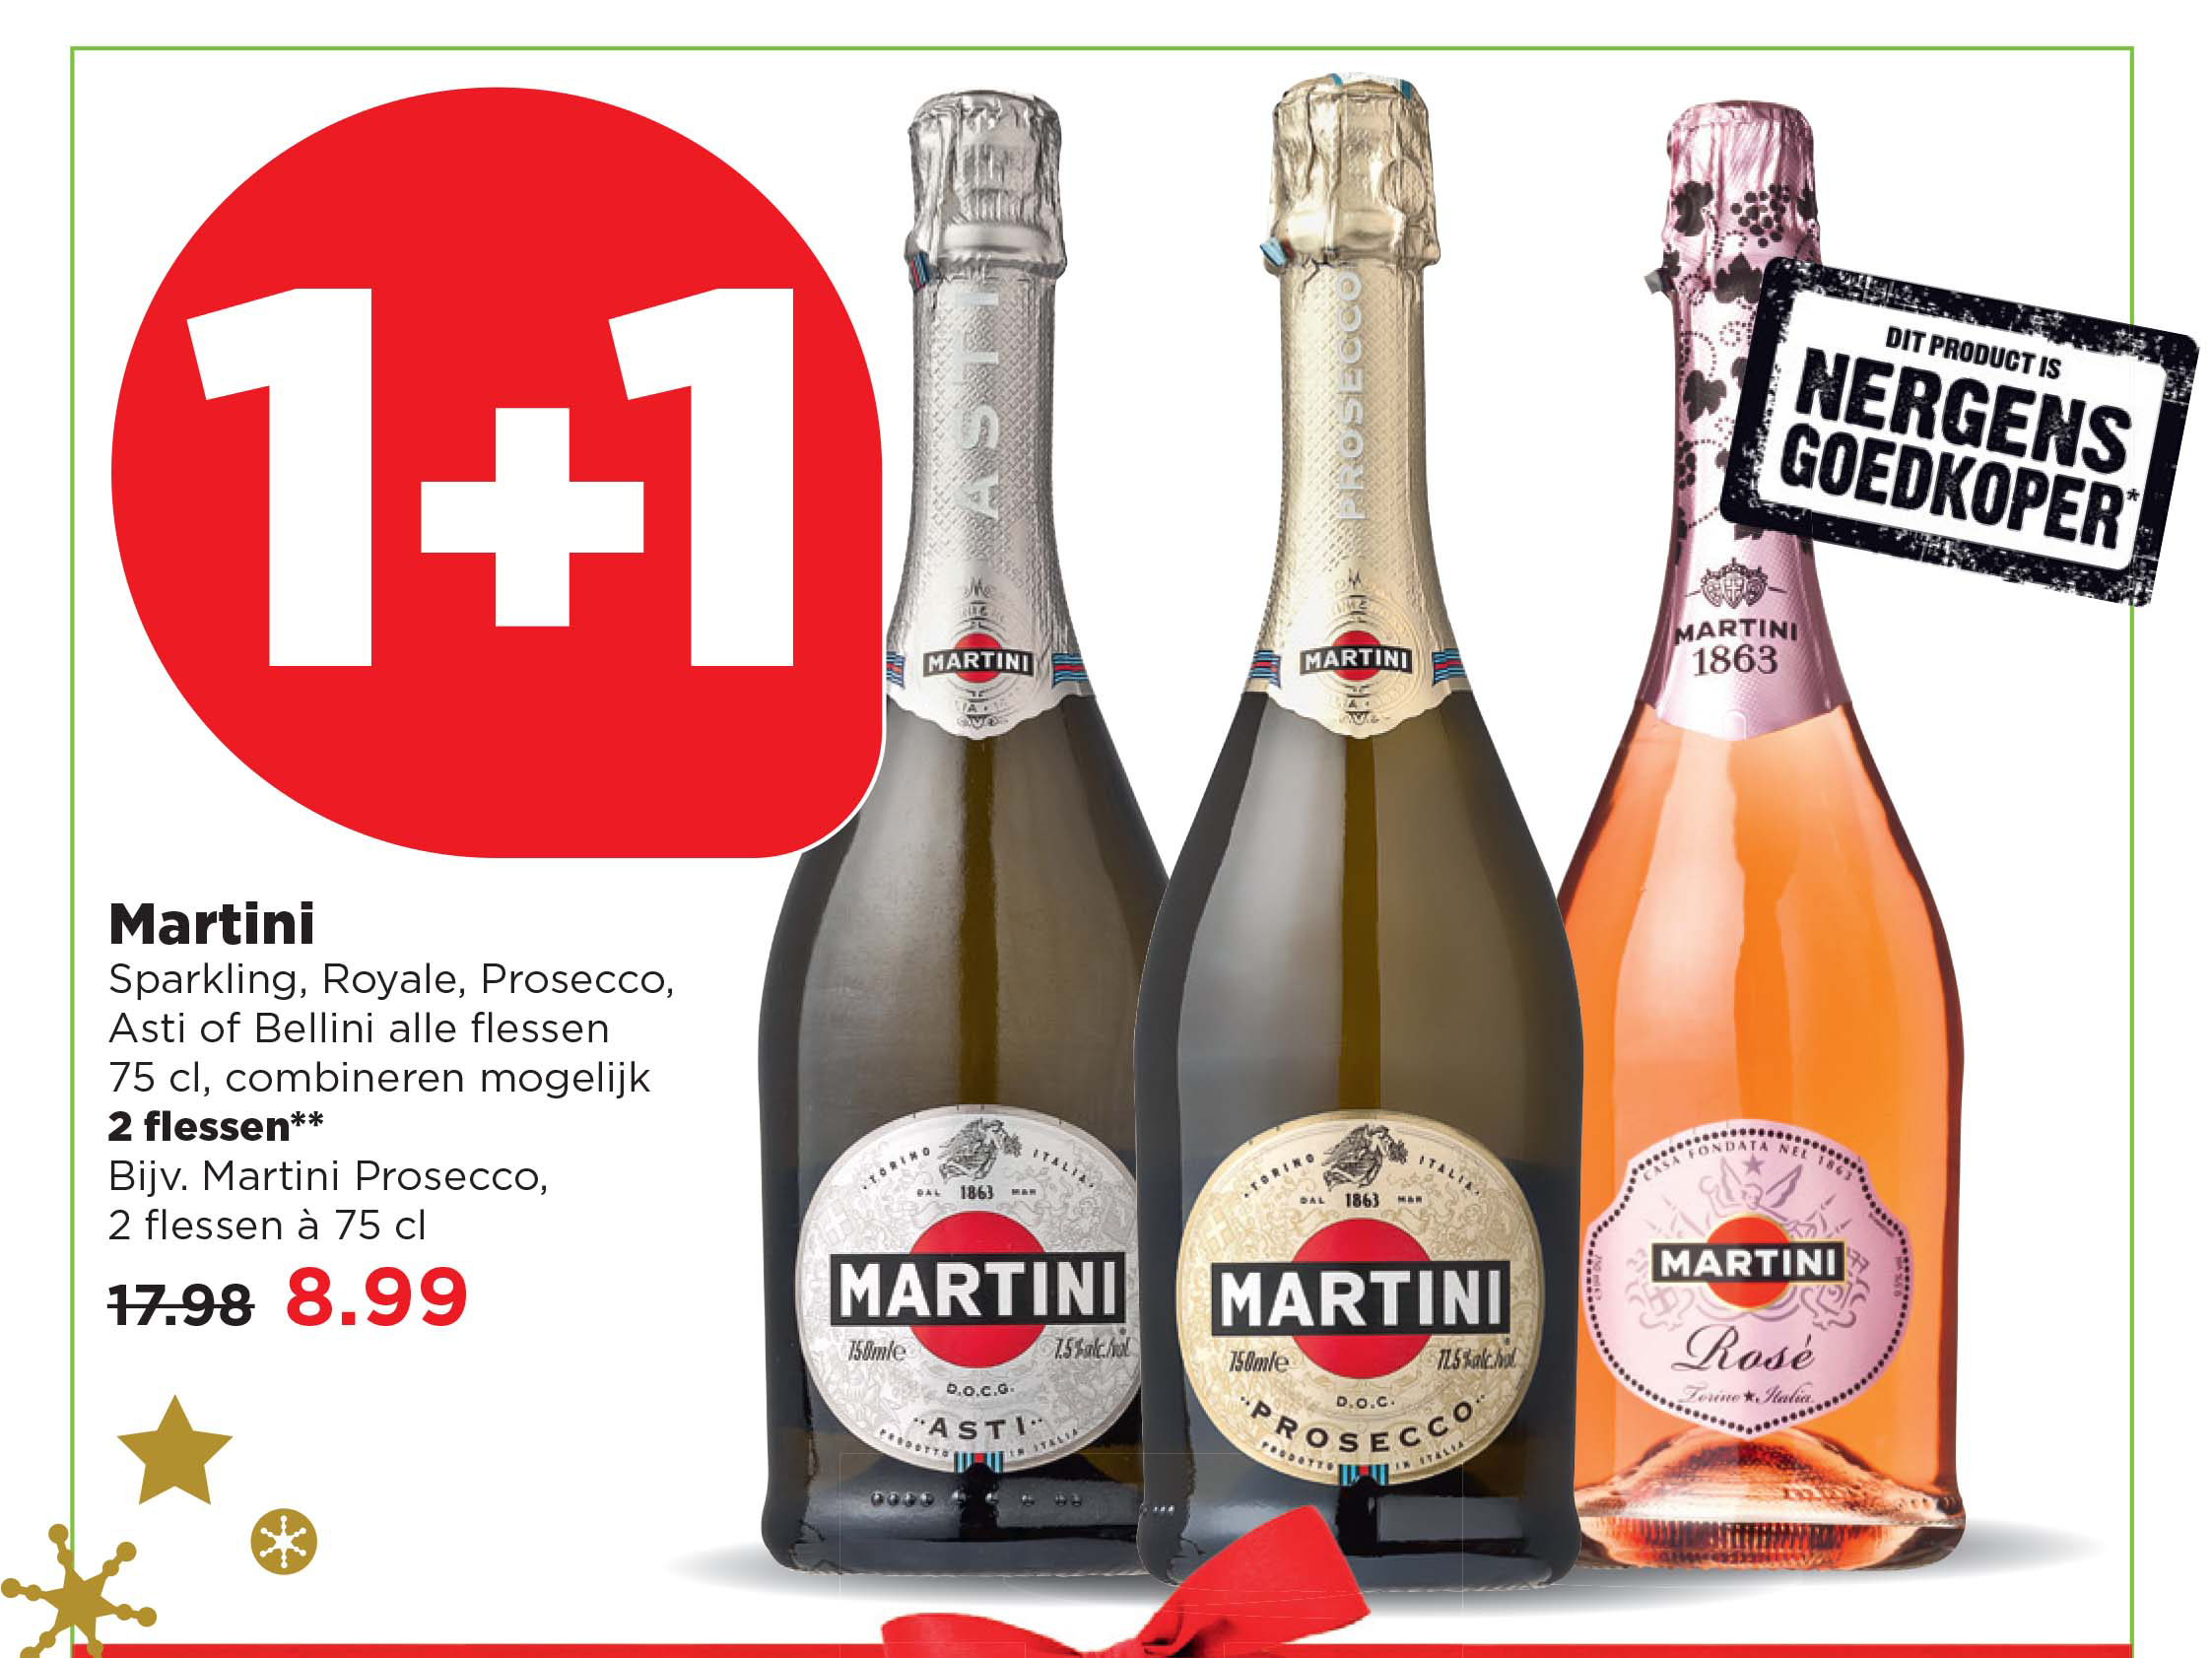 PLUS Martini: 1+1 Gratis